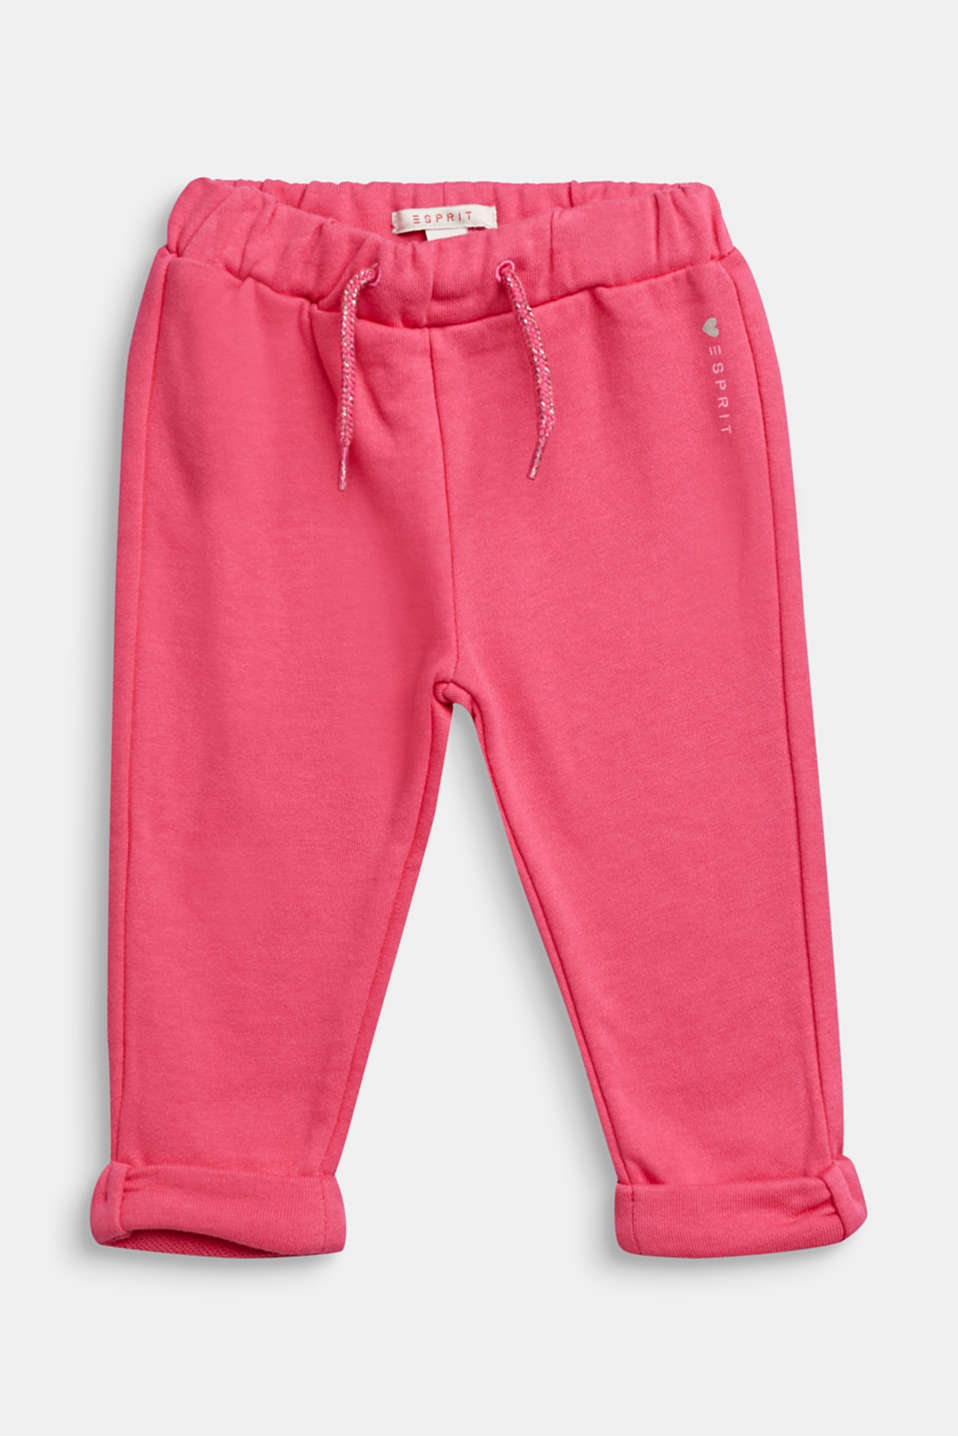 Sweatshirt trousers with glittering drawstring ties, 100% cotton, LCCANDY PINK, detail image number 0